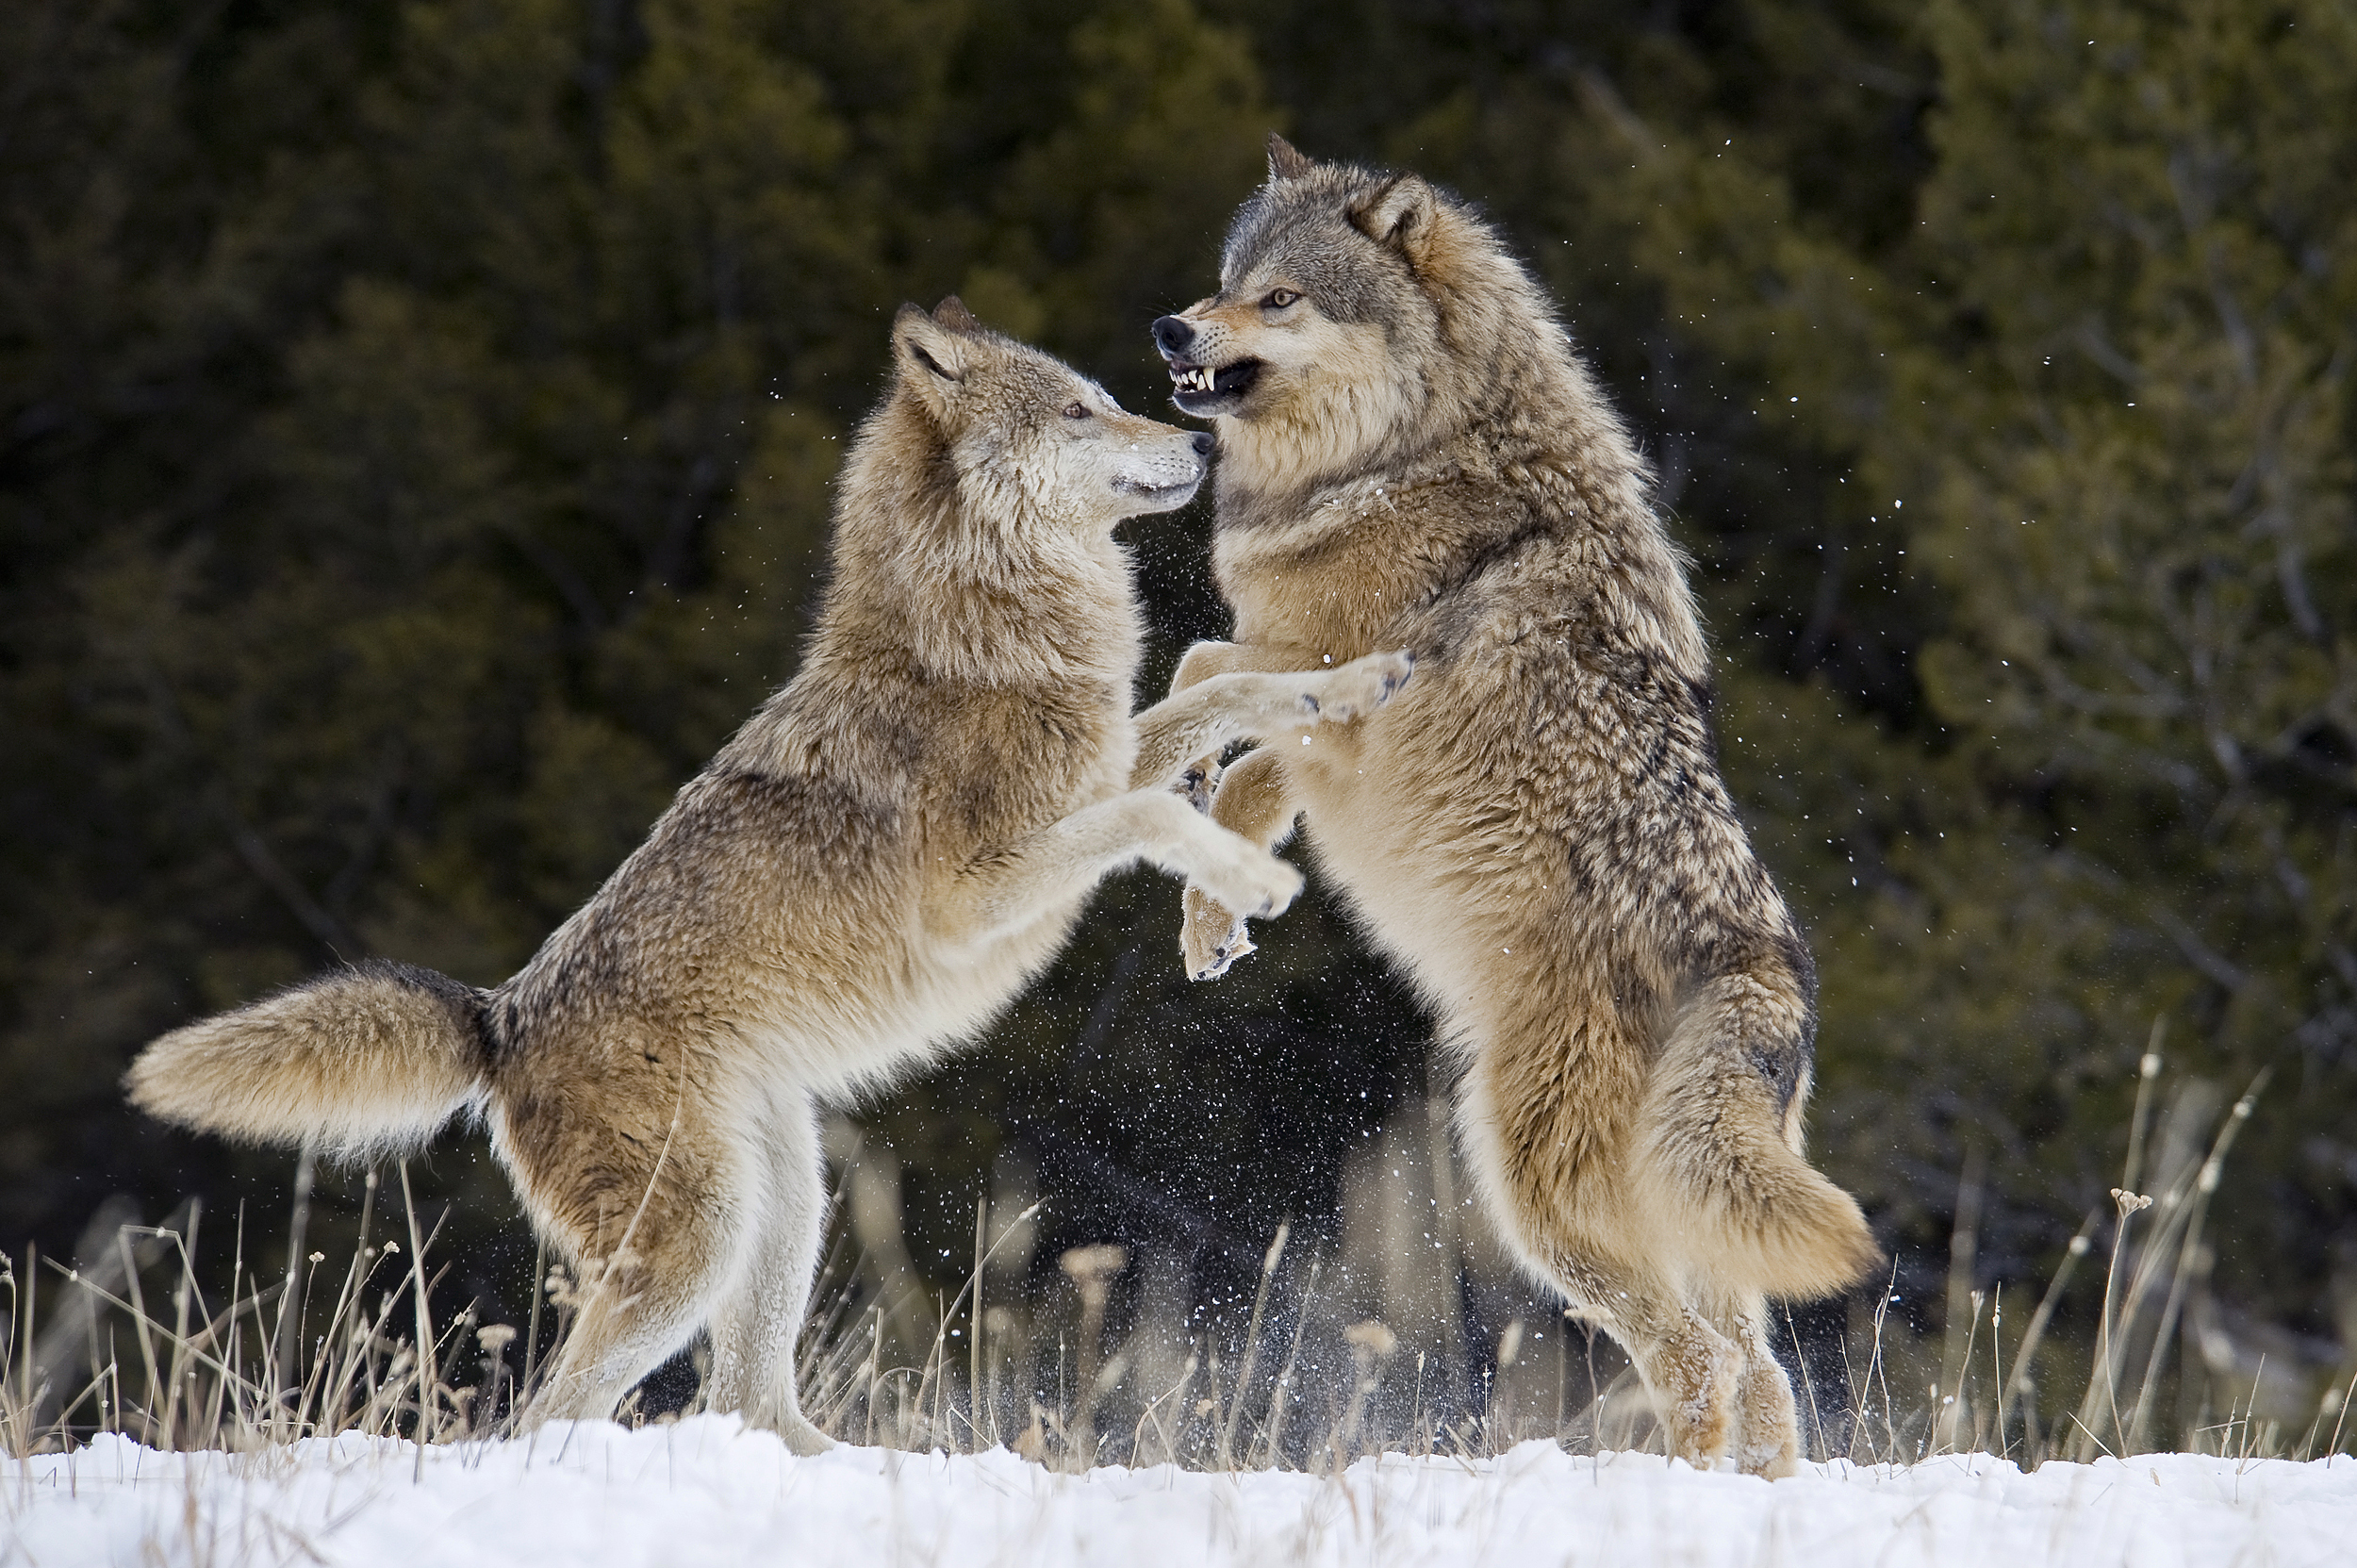 States defend expanded hunting after Biden administration says gray wolves may still need protection